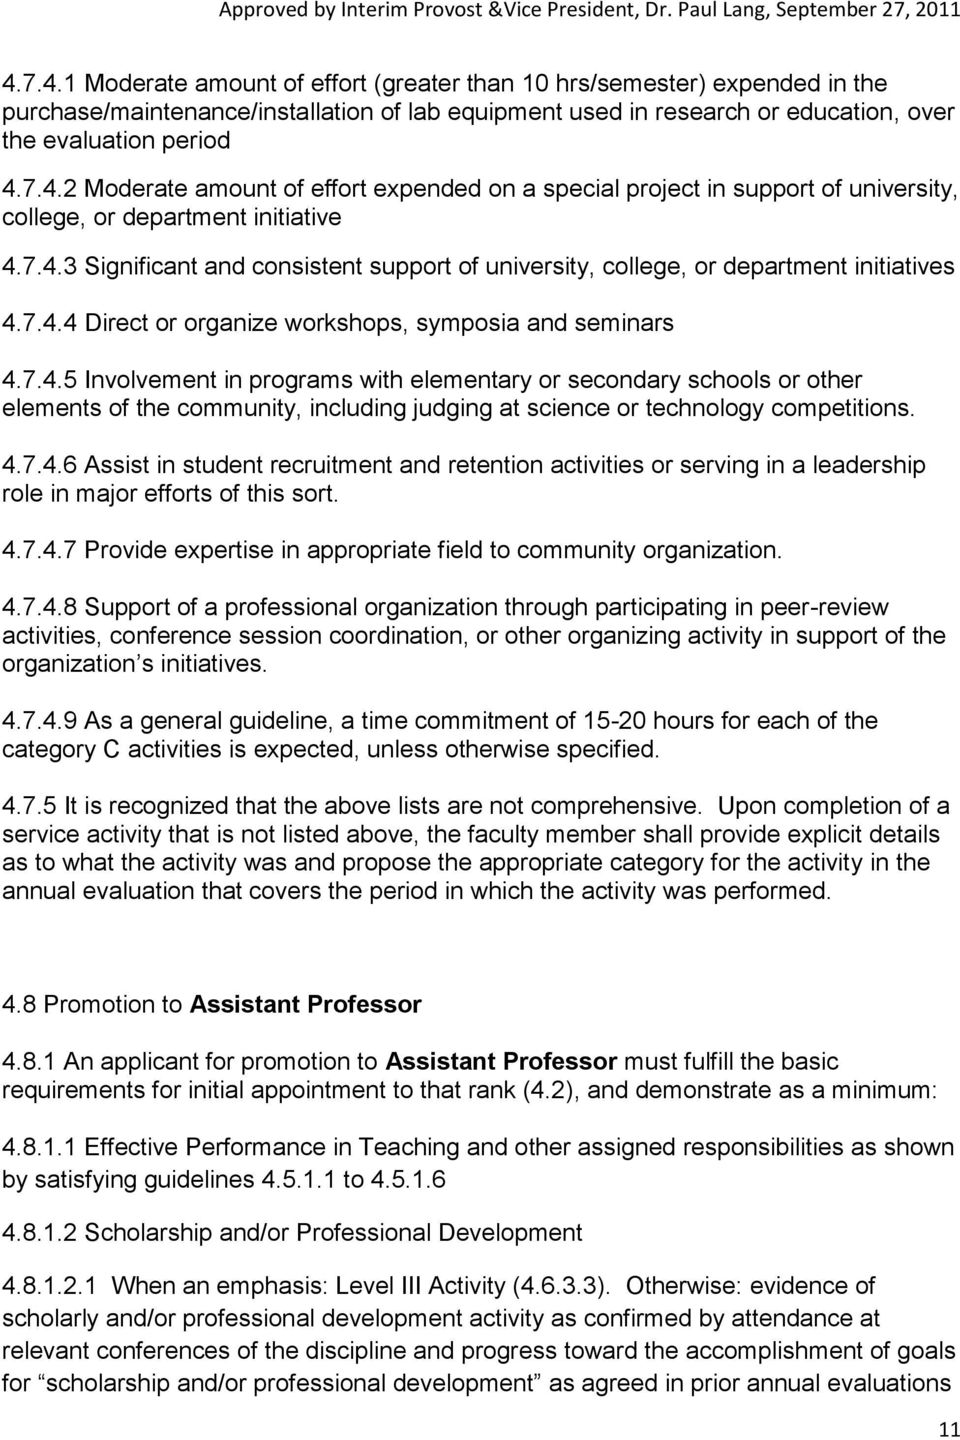 4.7.4.6 Assist in student recruitment and retention activities or serving in a leadership role in major efforts of this sort. 4.7.4.7 Provide expertise in appropriate field to community organization.